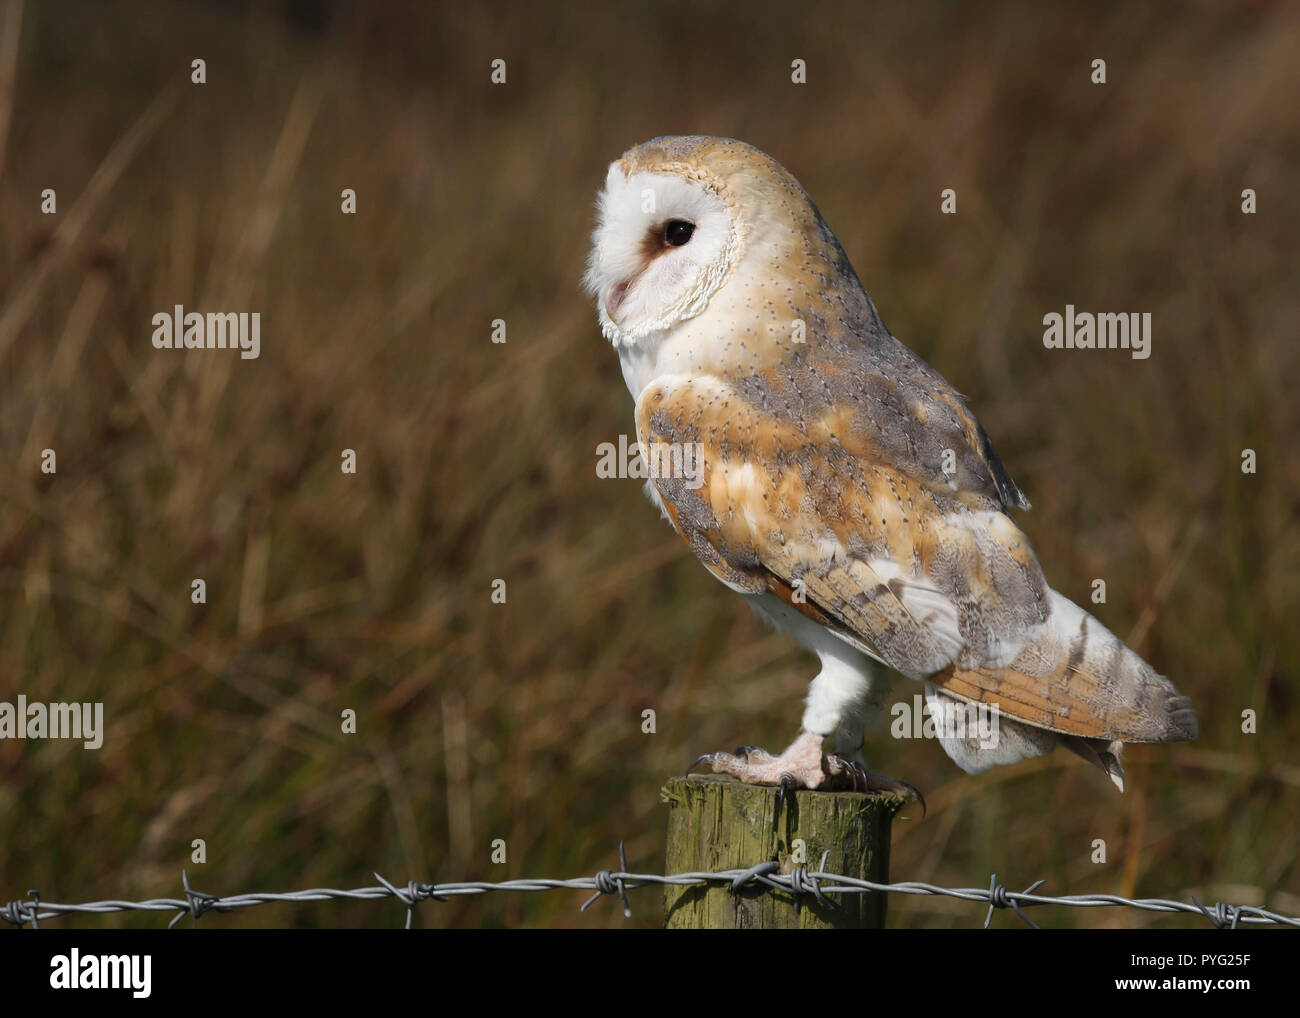 Barn Owl(Tyto alba) perched on a fence post at the edge of a field in Mid Wales, UK - Stock Image